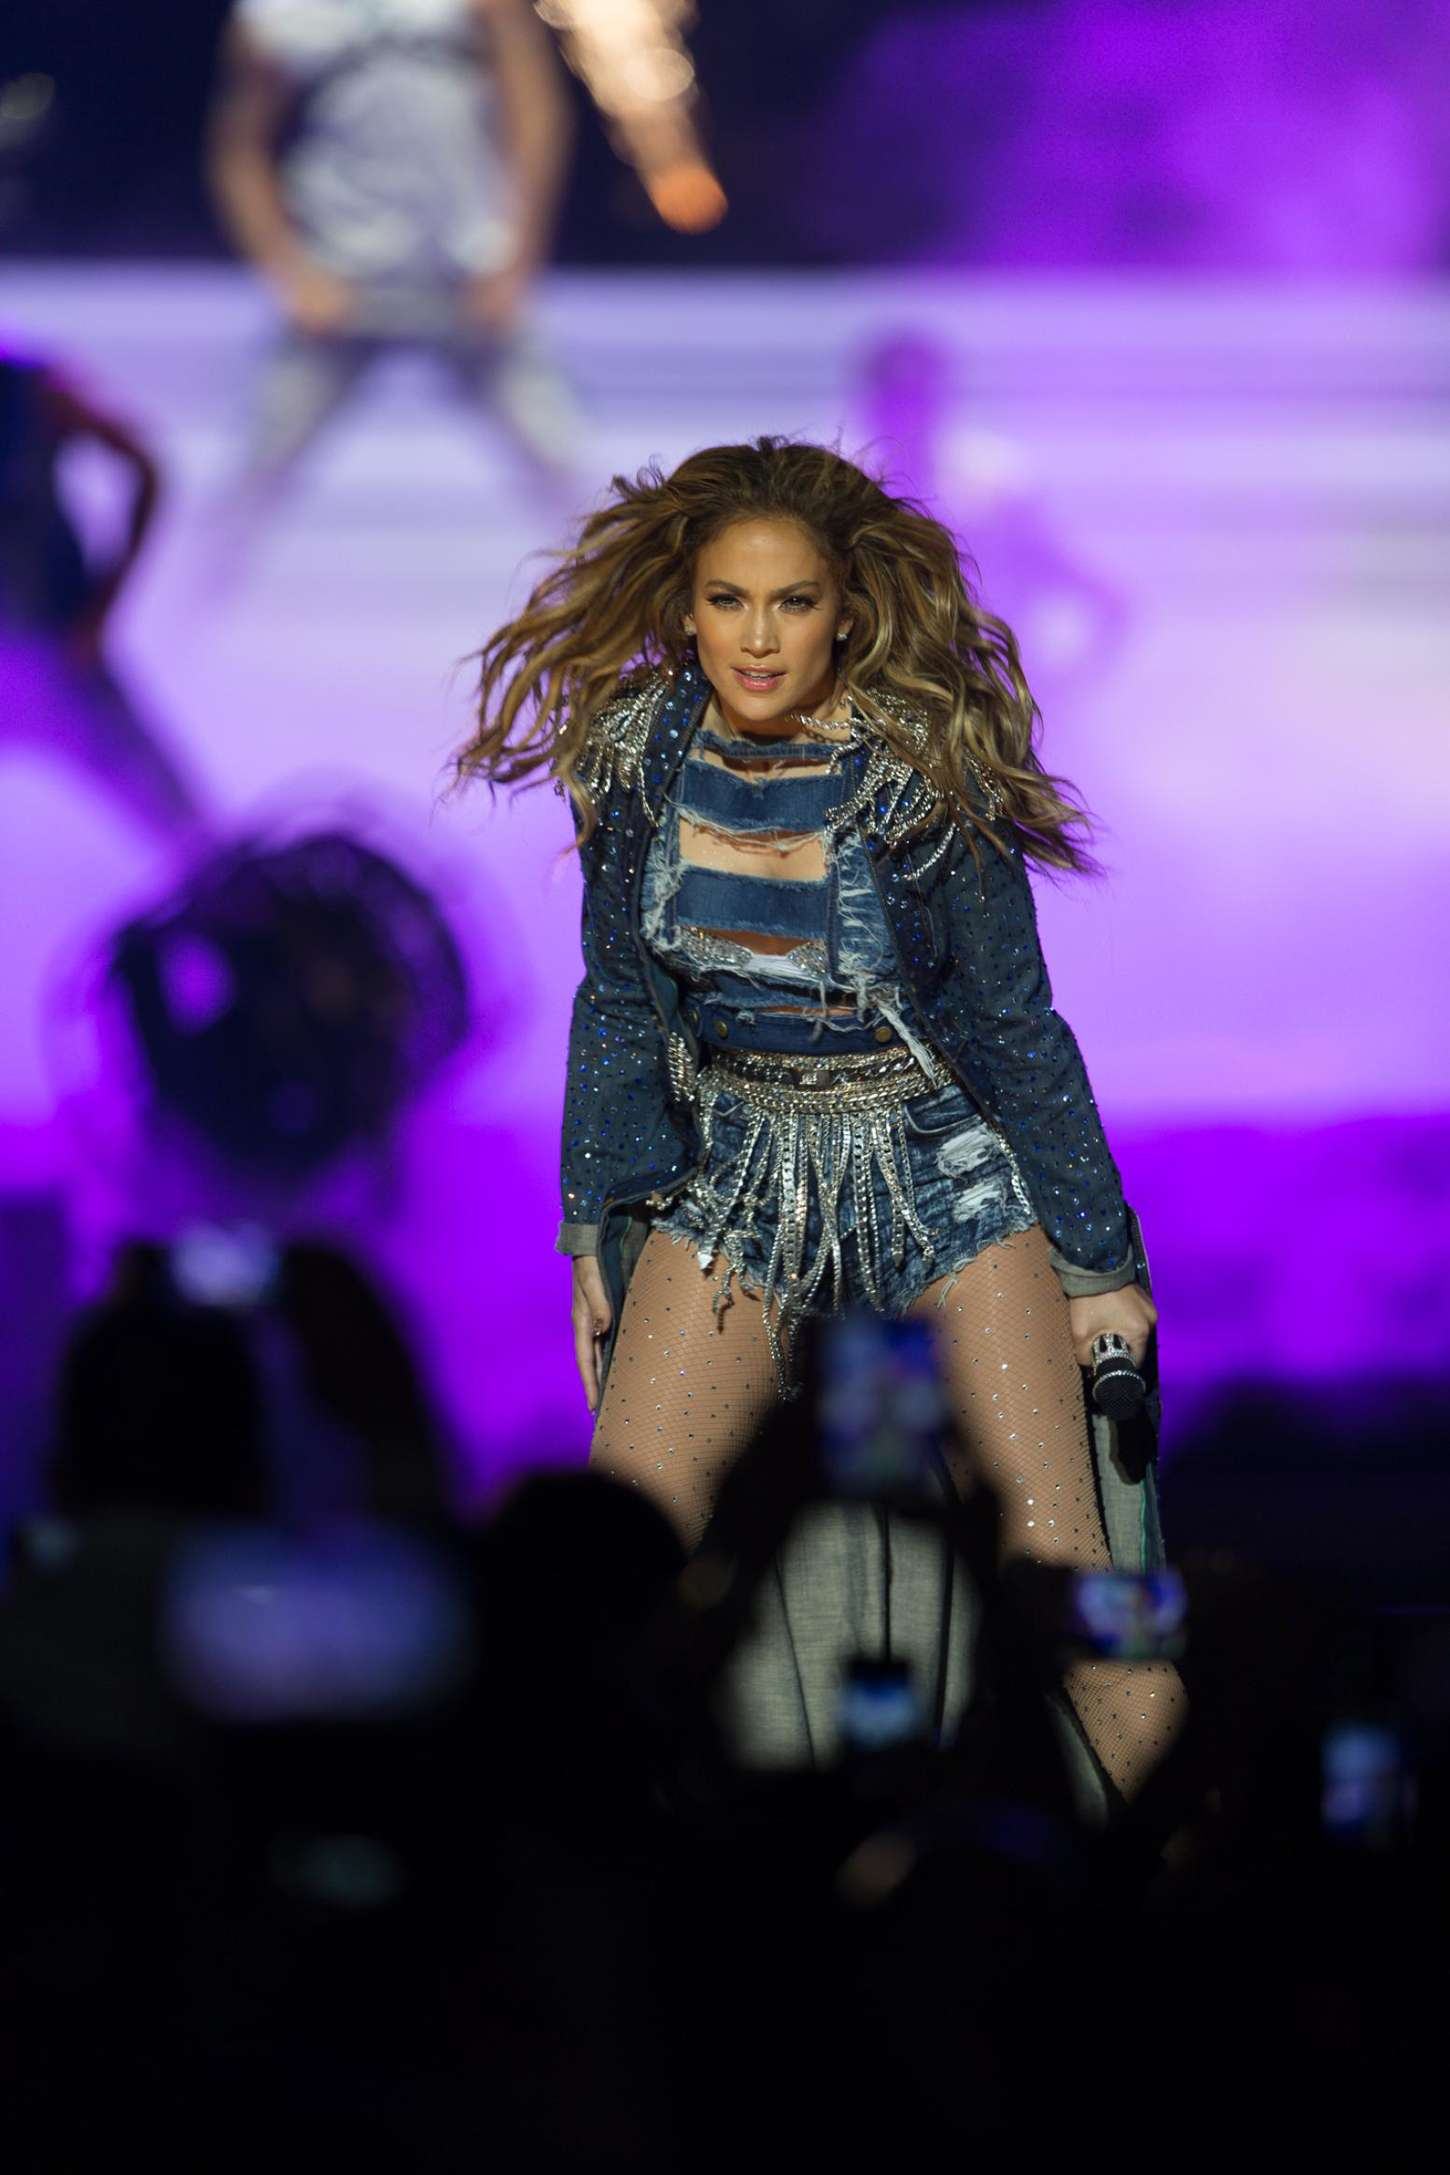 Jennifer lopez performs live in dubai 15 gotceleb Where does jennifer lopez live